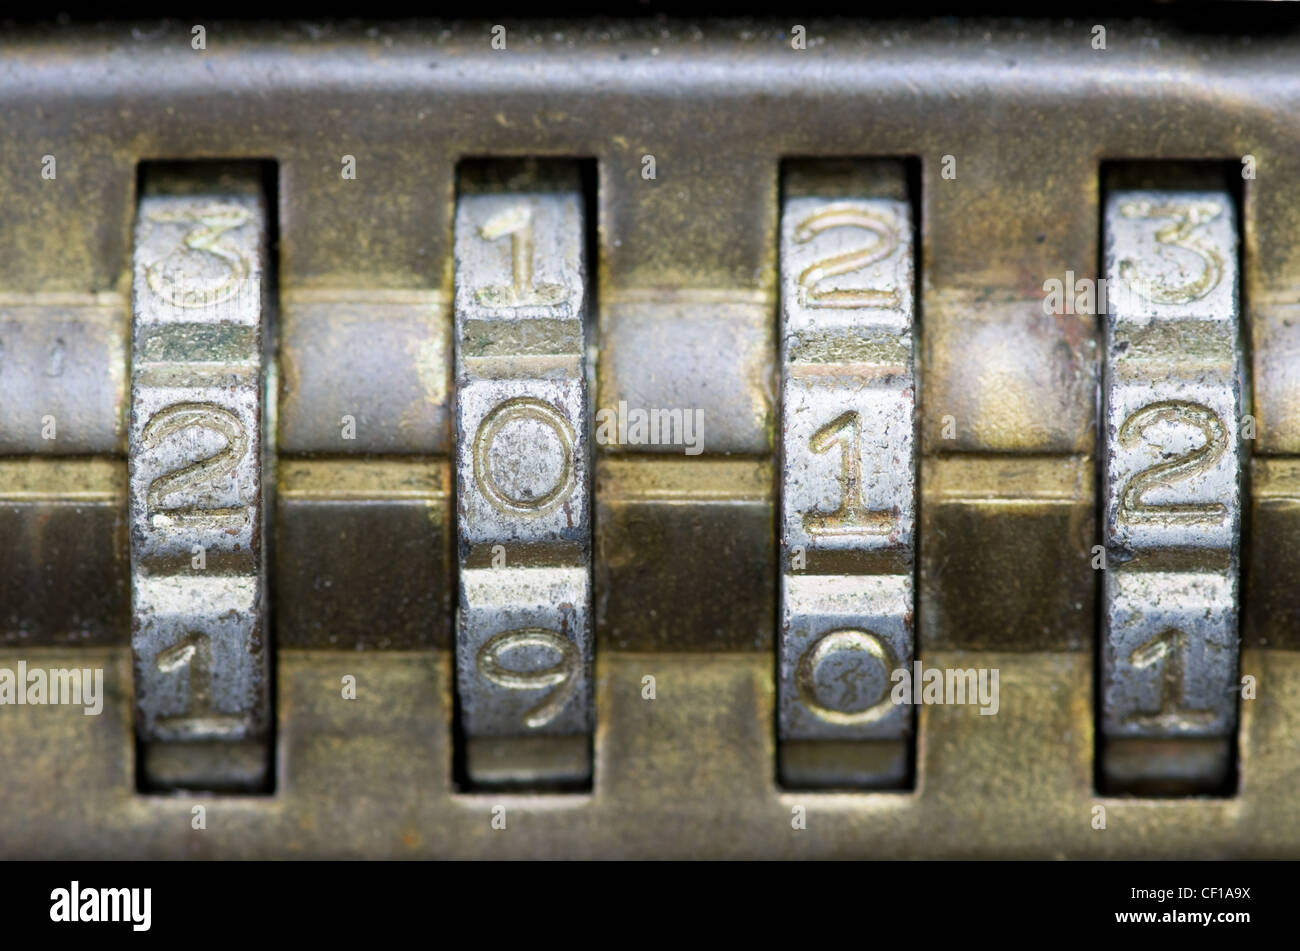 brass combination lock with the number set to 2012 - Stock Image